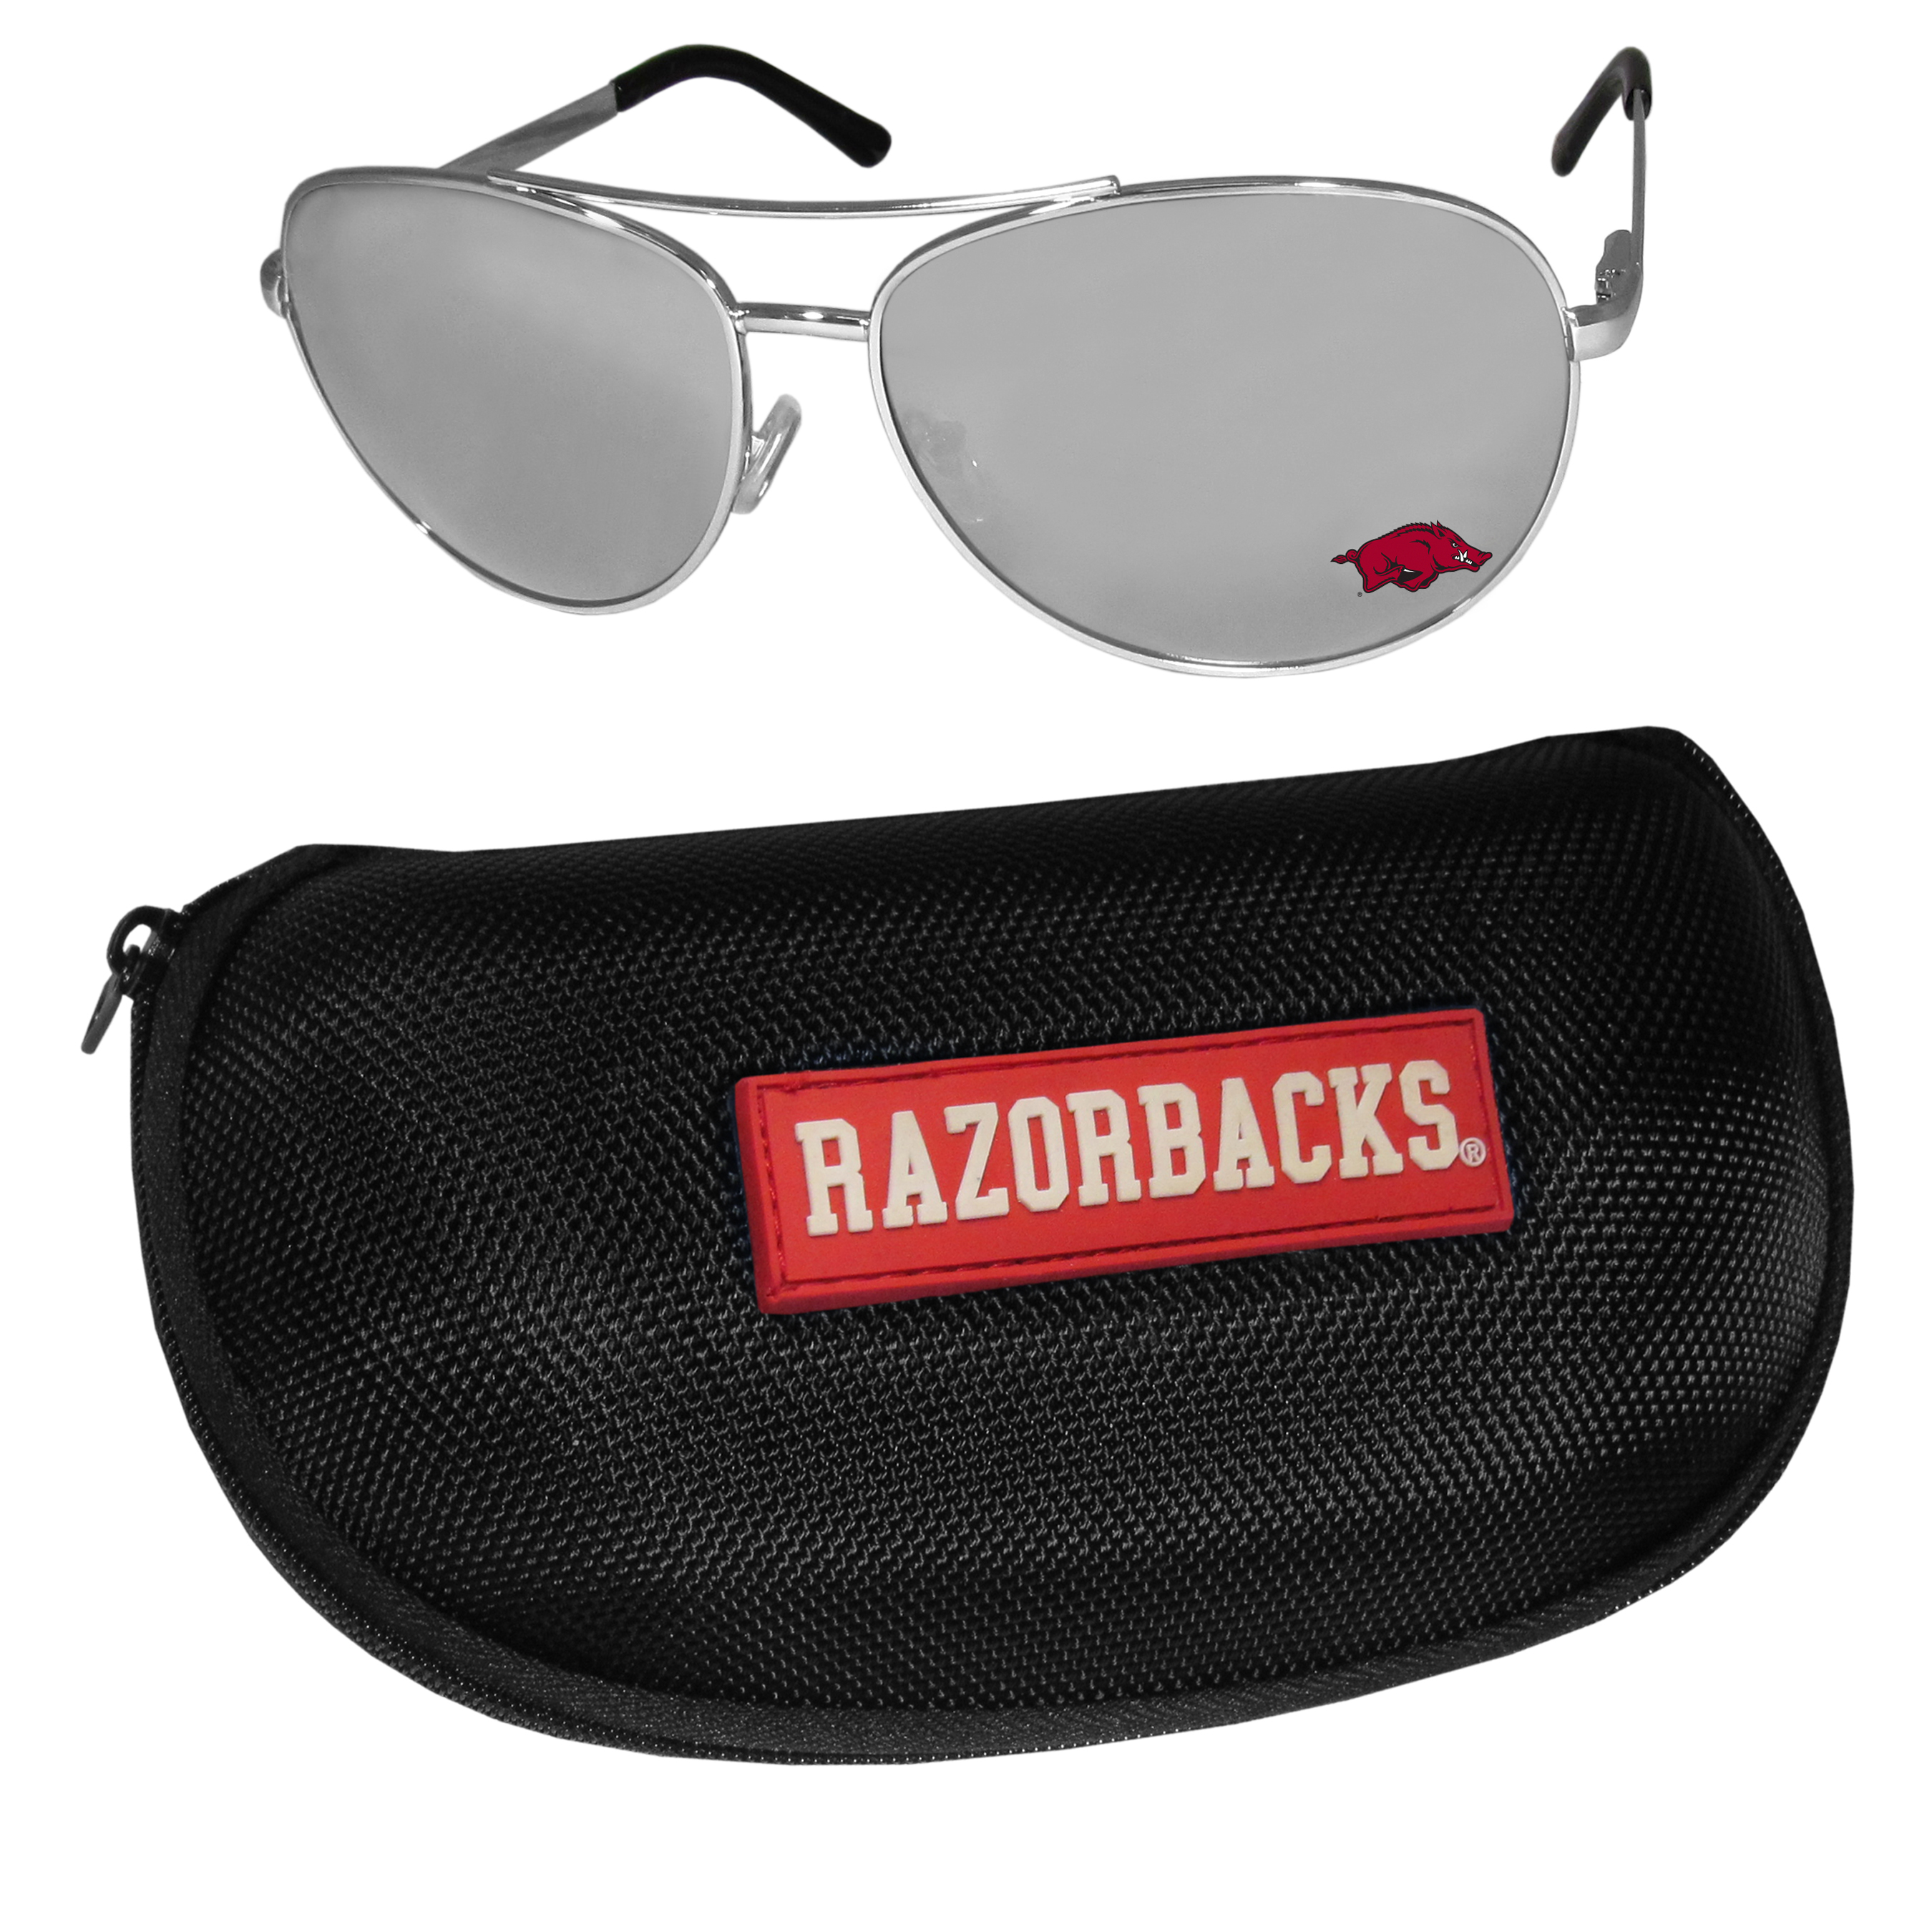 Arkansas Razorbacks Aviator Sunglasses and Zippered Carrying Case - Aviator sunglasses are truly an iconic retro fashion statement that never goes out-of-style. Our Arkansas Razorbacks  aviator sunglasses pair this classic look with your love of the game. The iridium coated lenses reduce glare while driving, boating, golfing and their 100% UVA/UVB rating provides you with the maximum UV protection for all your outdoor activities. A millennial favorite, these affordable designer frames are the perfect eyewear accessory for a sports fan that is looking for high-quality at an affordable price. The durable, flex hinged frames are tough enough for hiking and camping or if you prefer sun bathing by the pool or on the beach these shades will really stand the test of time. The sunglasses come with a hard shell zippered case which has a large team logo on the lid that will make even the most die-hard fan proud!